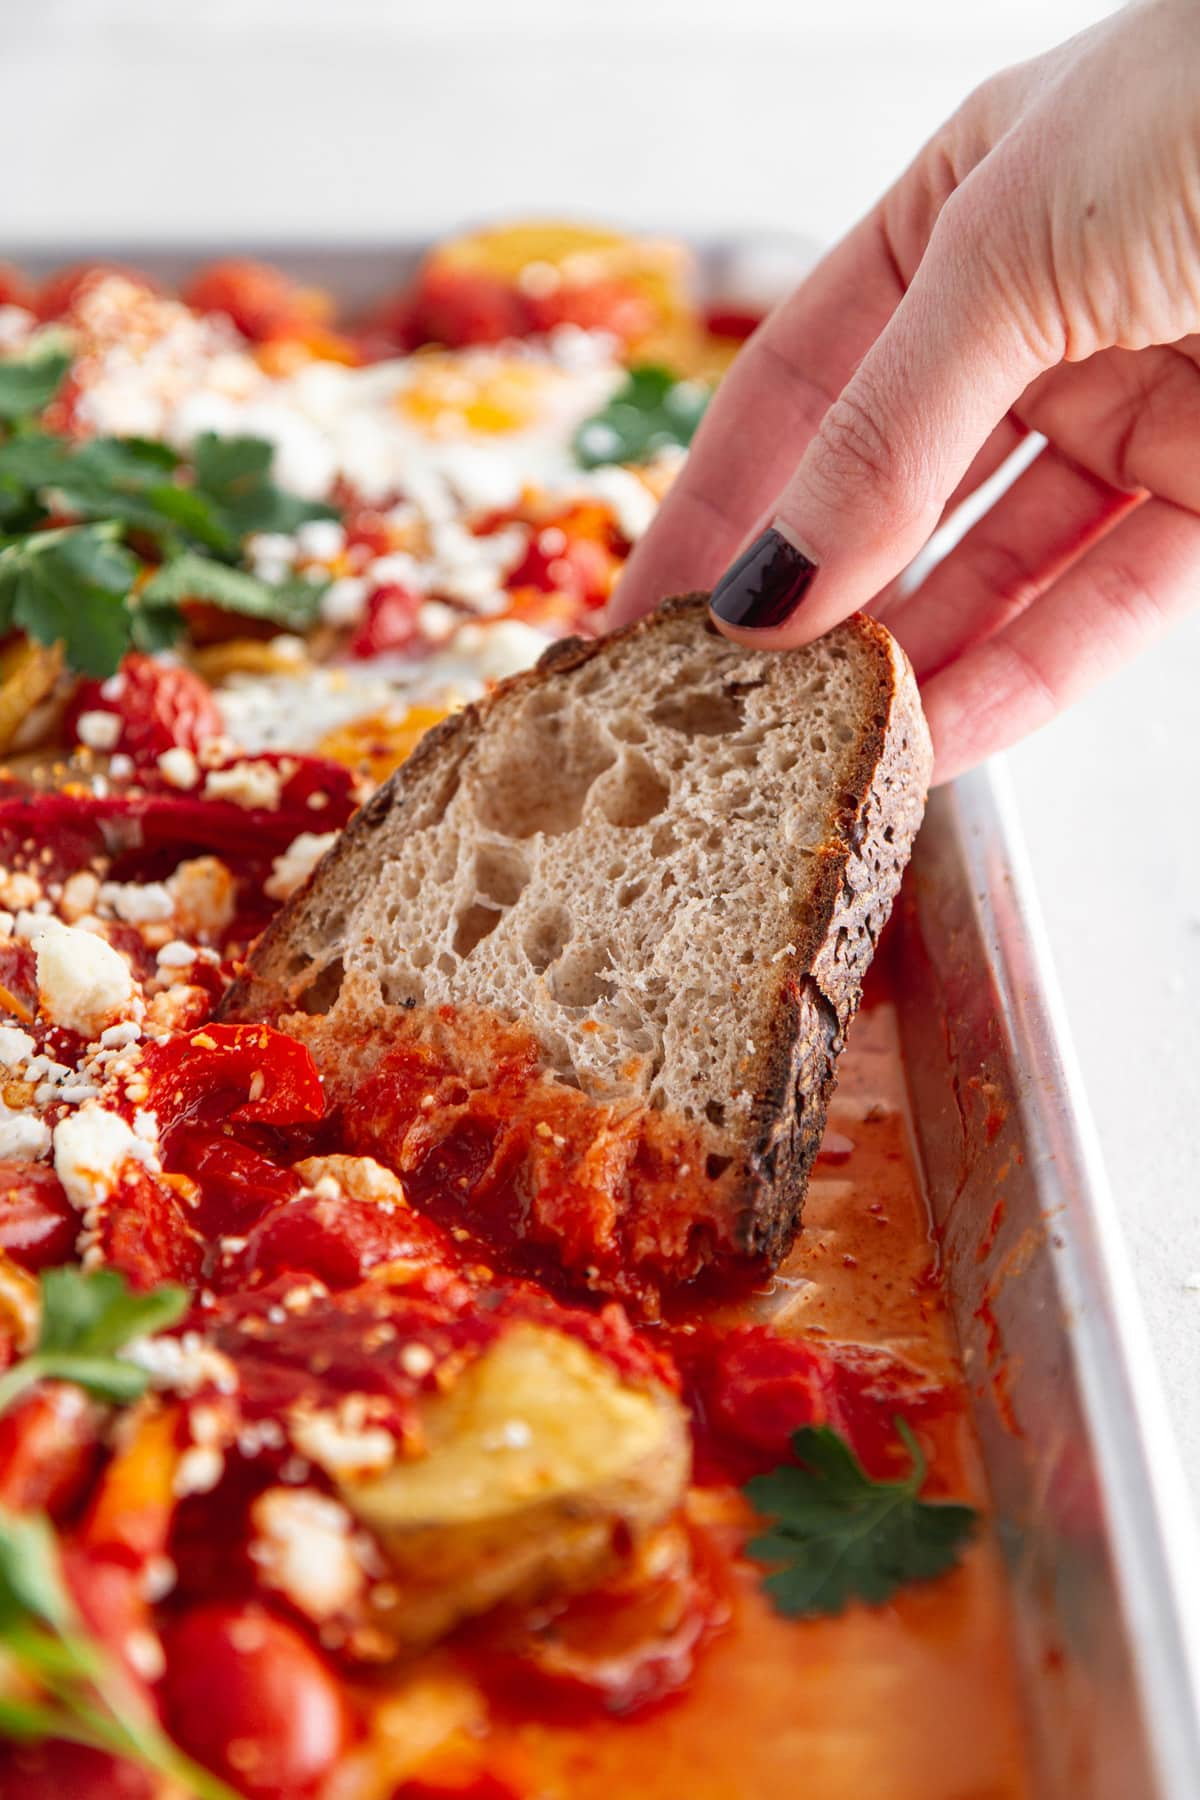 dipping a slice of bread into sheet pan shakshuka